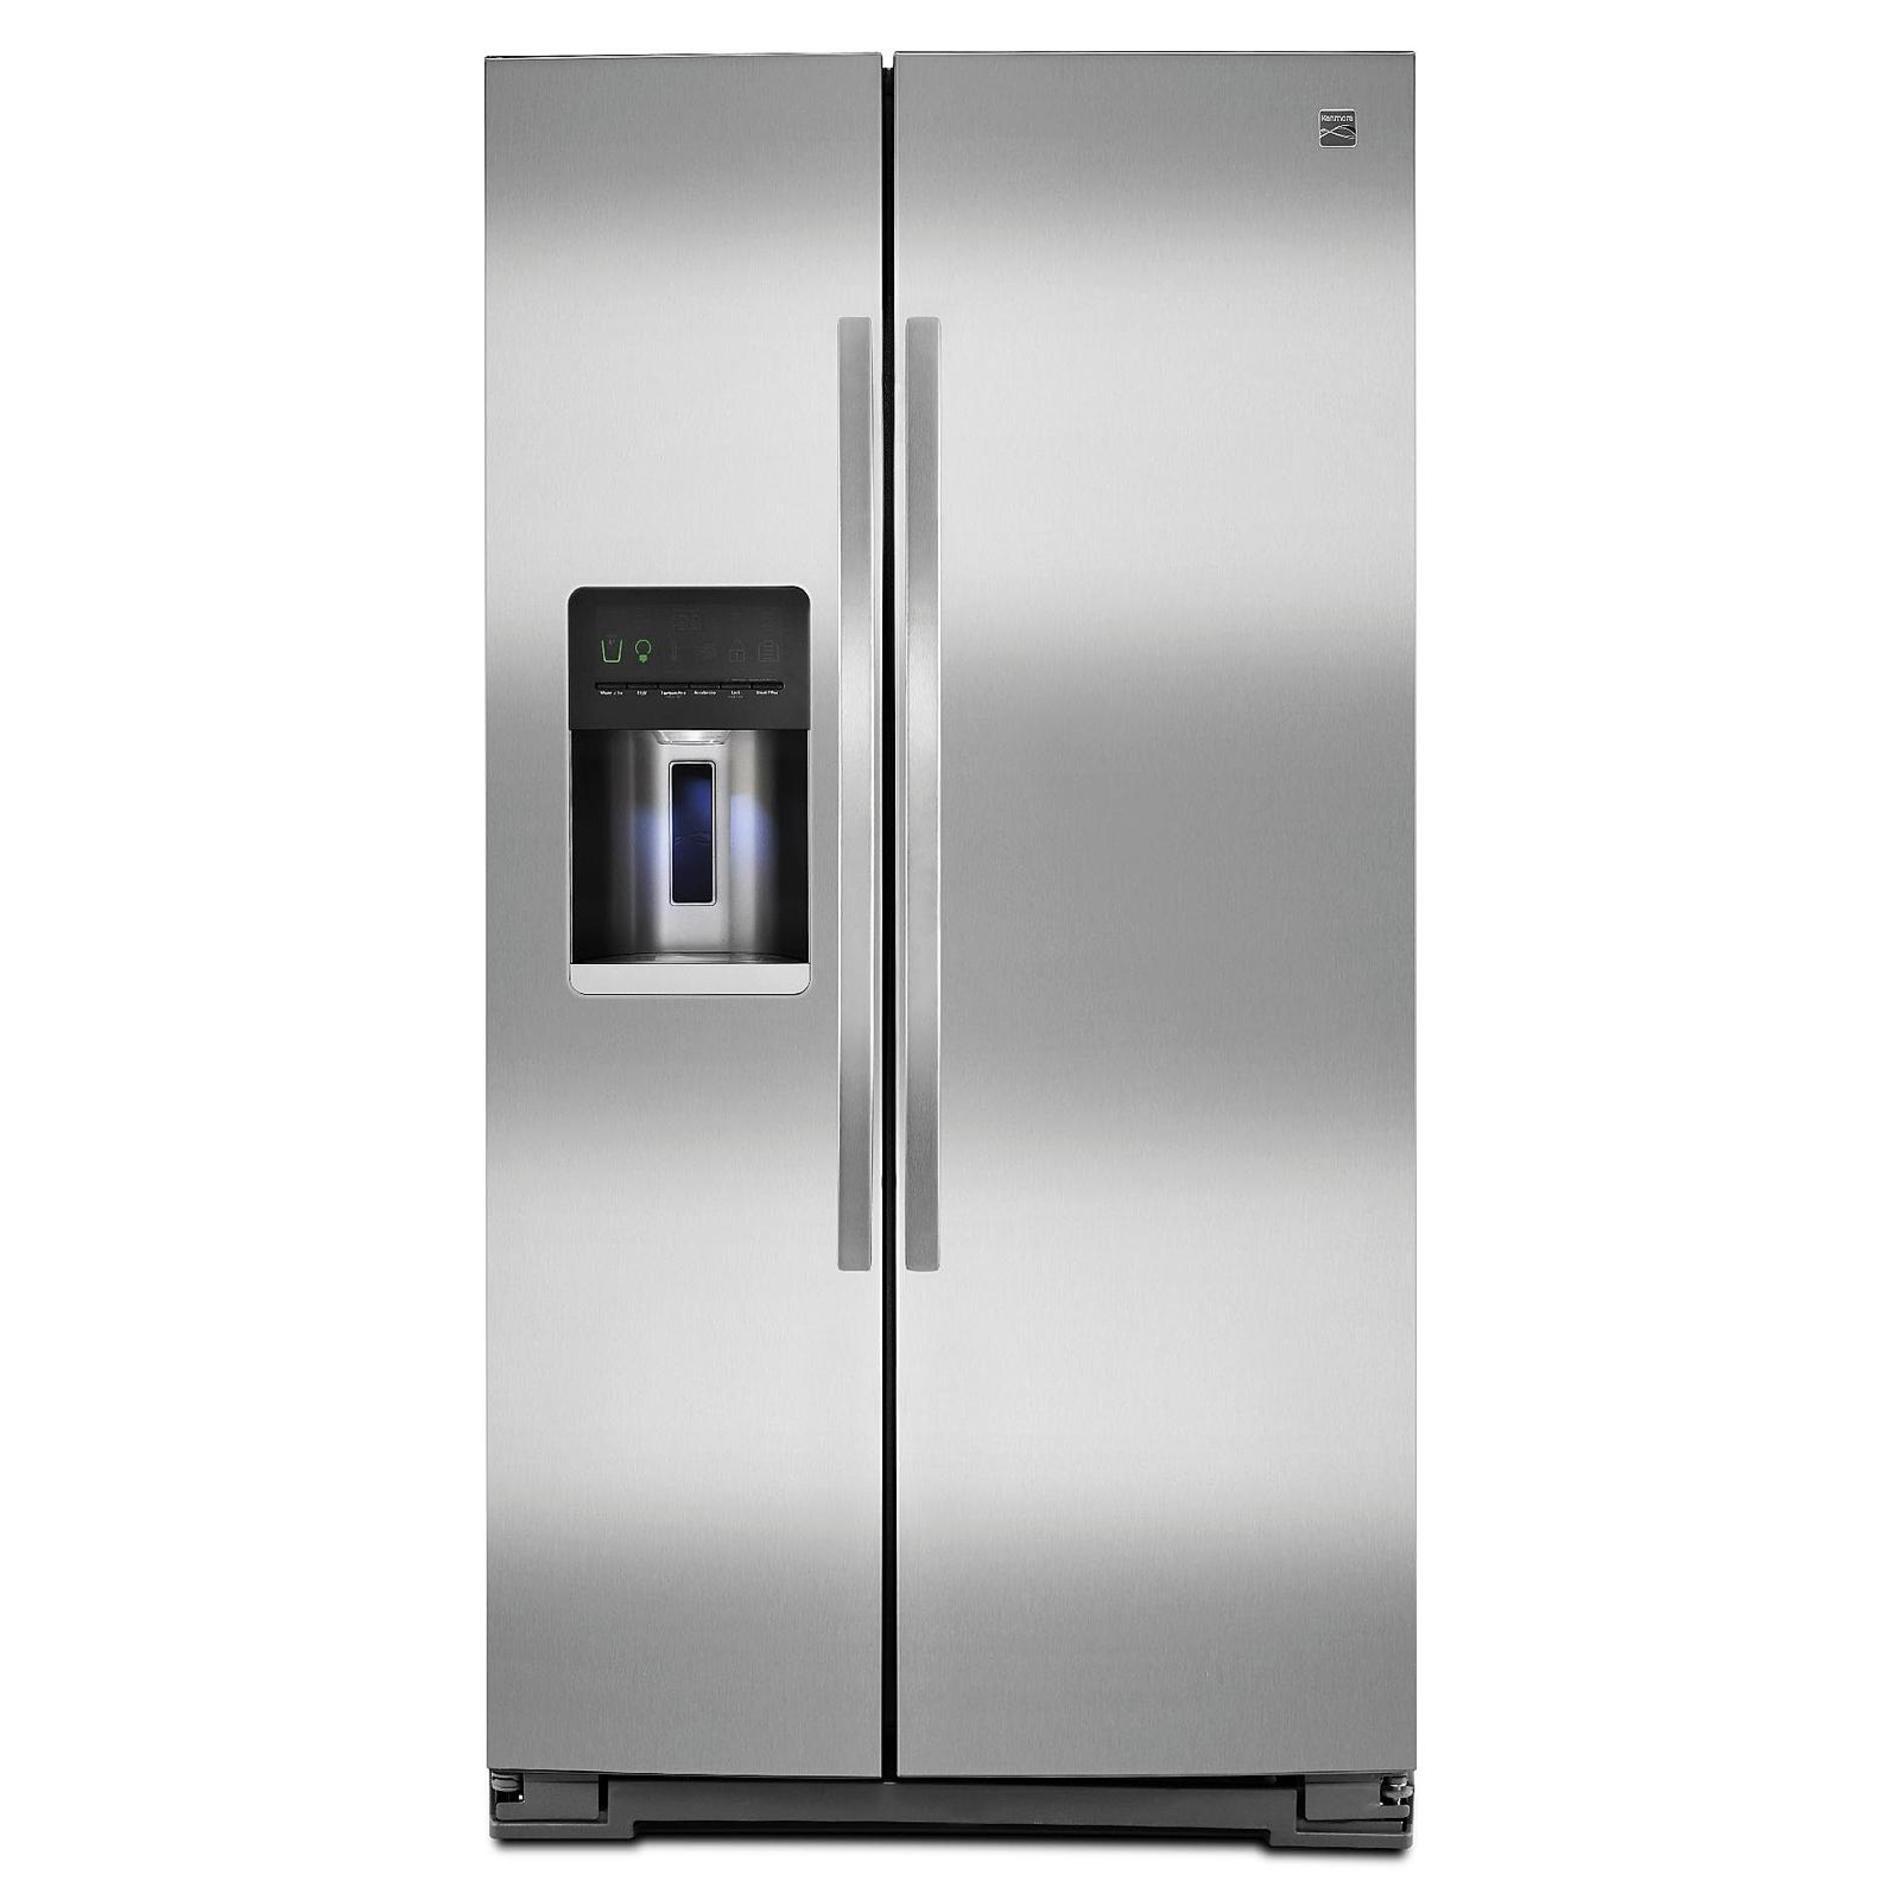 hight resolution of side by side refrigerator stainless steel